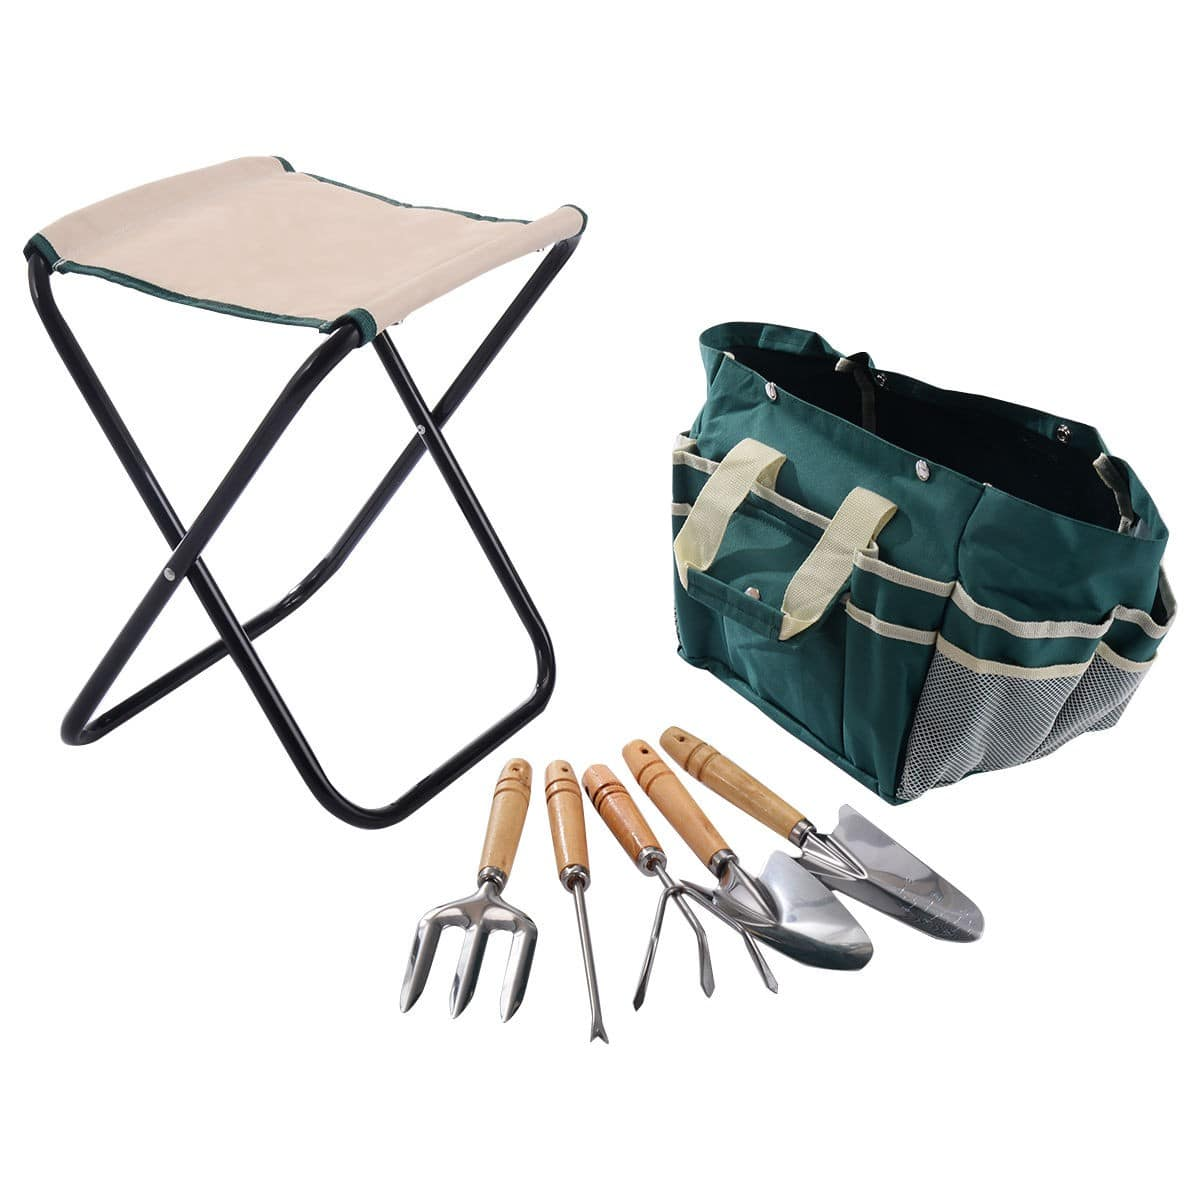 Costway 7-Piece Garden Tool Bag Set w/ Folding Stool $15.95 + Free Shipping